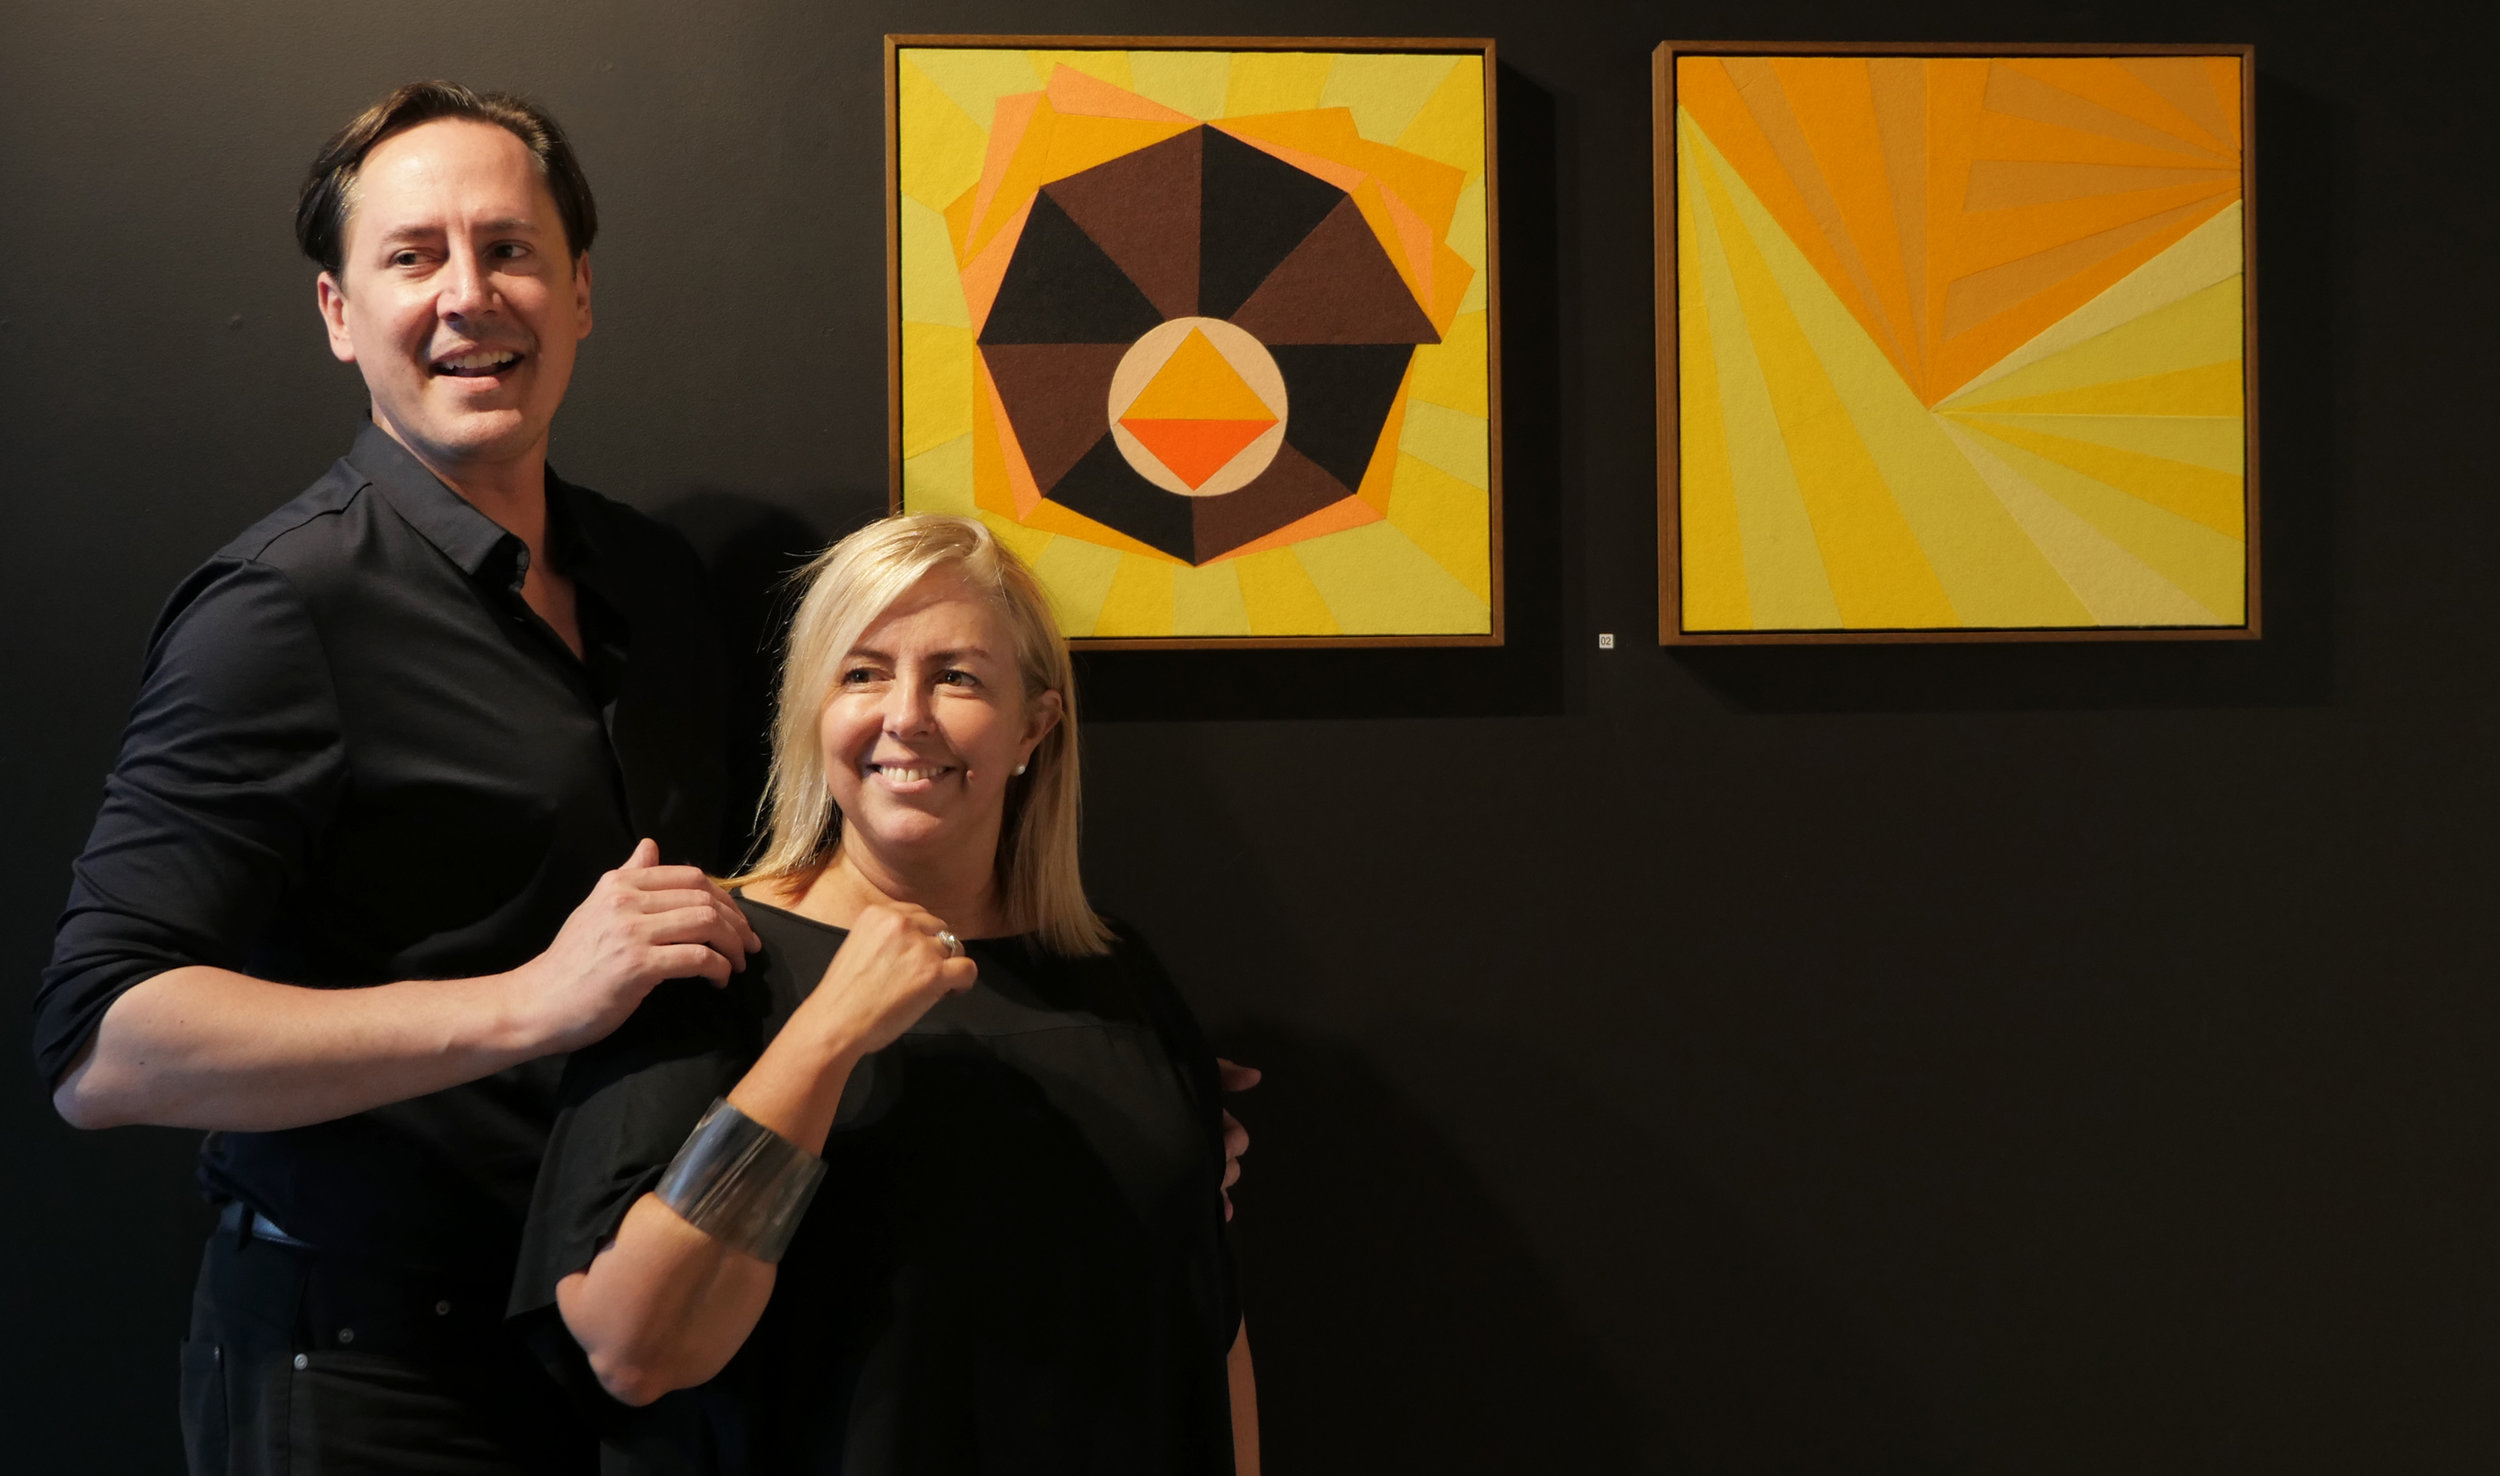 Francesco Cordua (L) and Maria Villa (R) at the  Inside Outside  exhibition opening at  Vandal Gallery